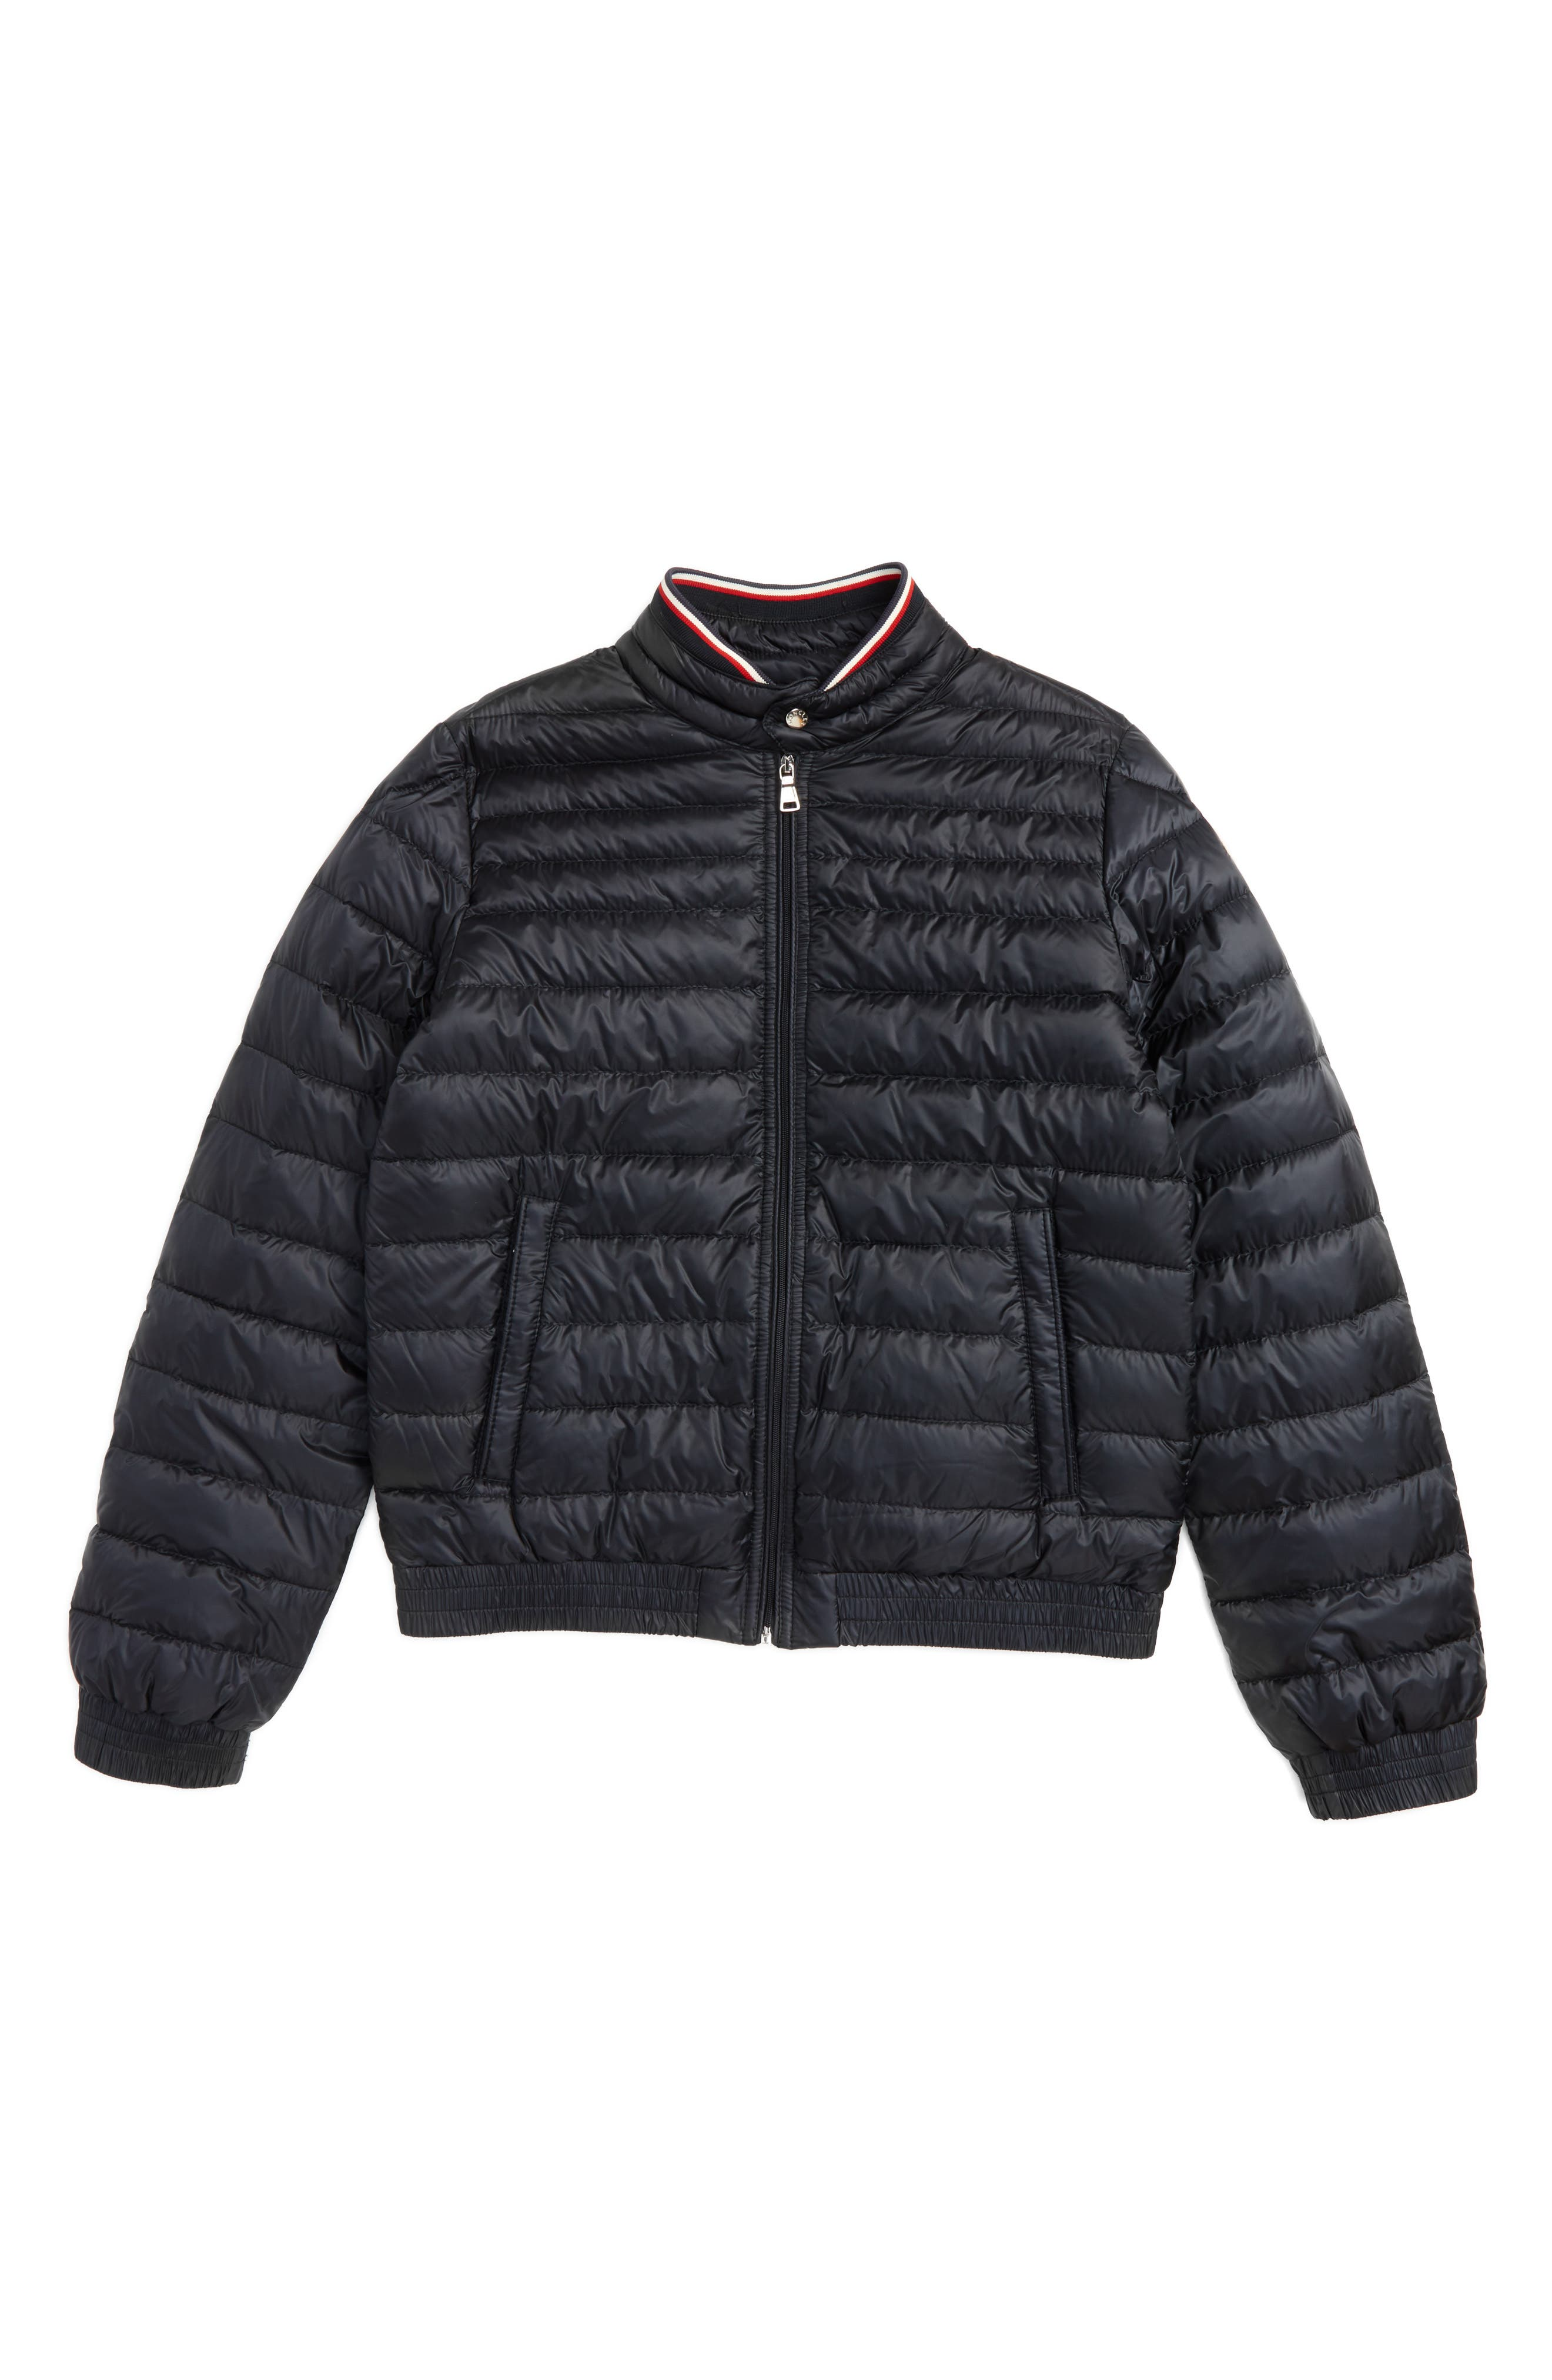 Main Image - Moncler Garin Water Resistant Down Moto Jacket (Little Kids & Big Kids)